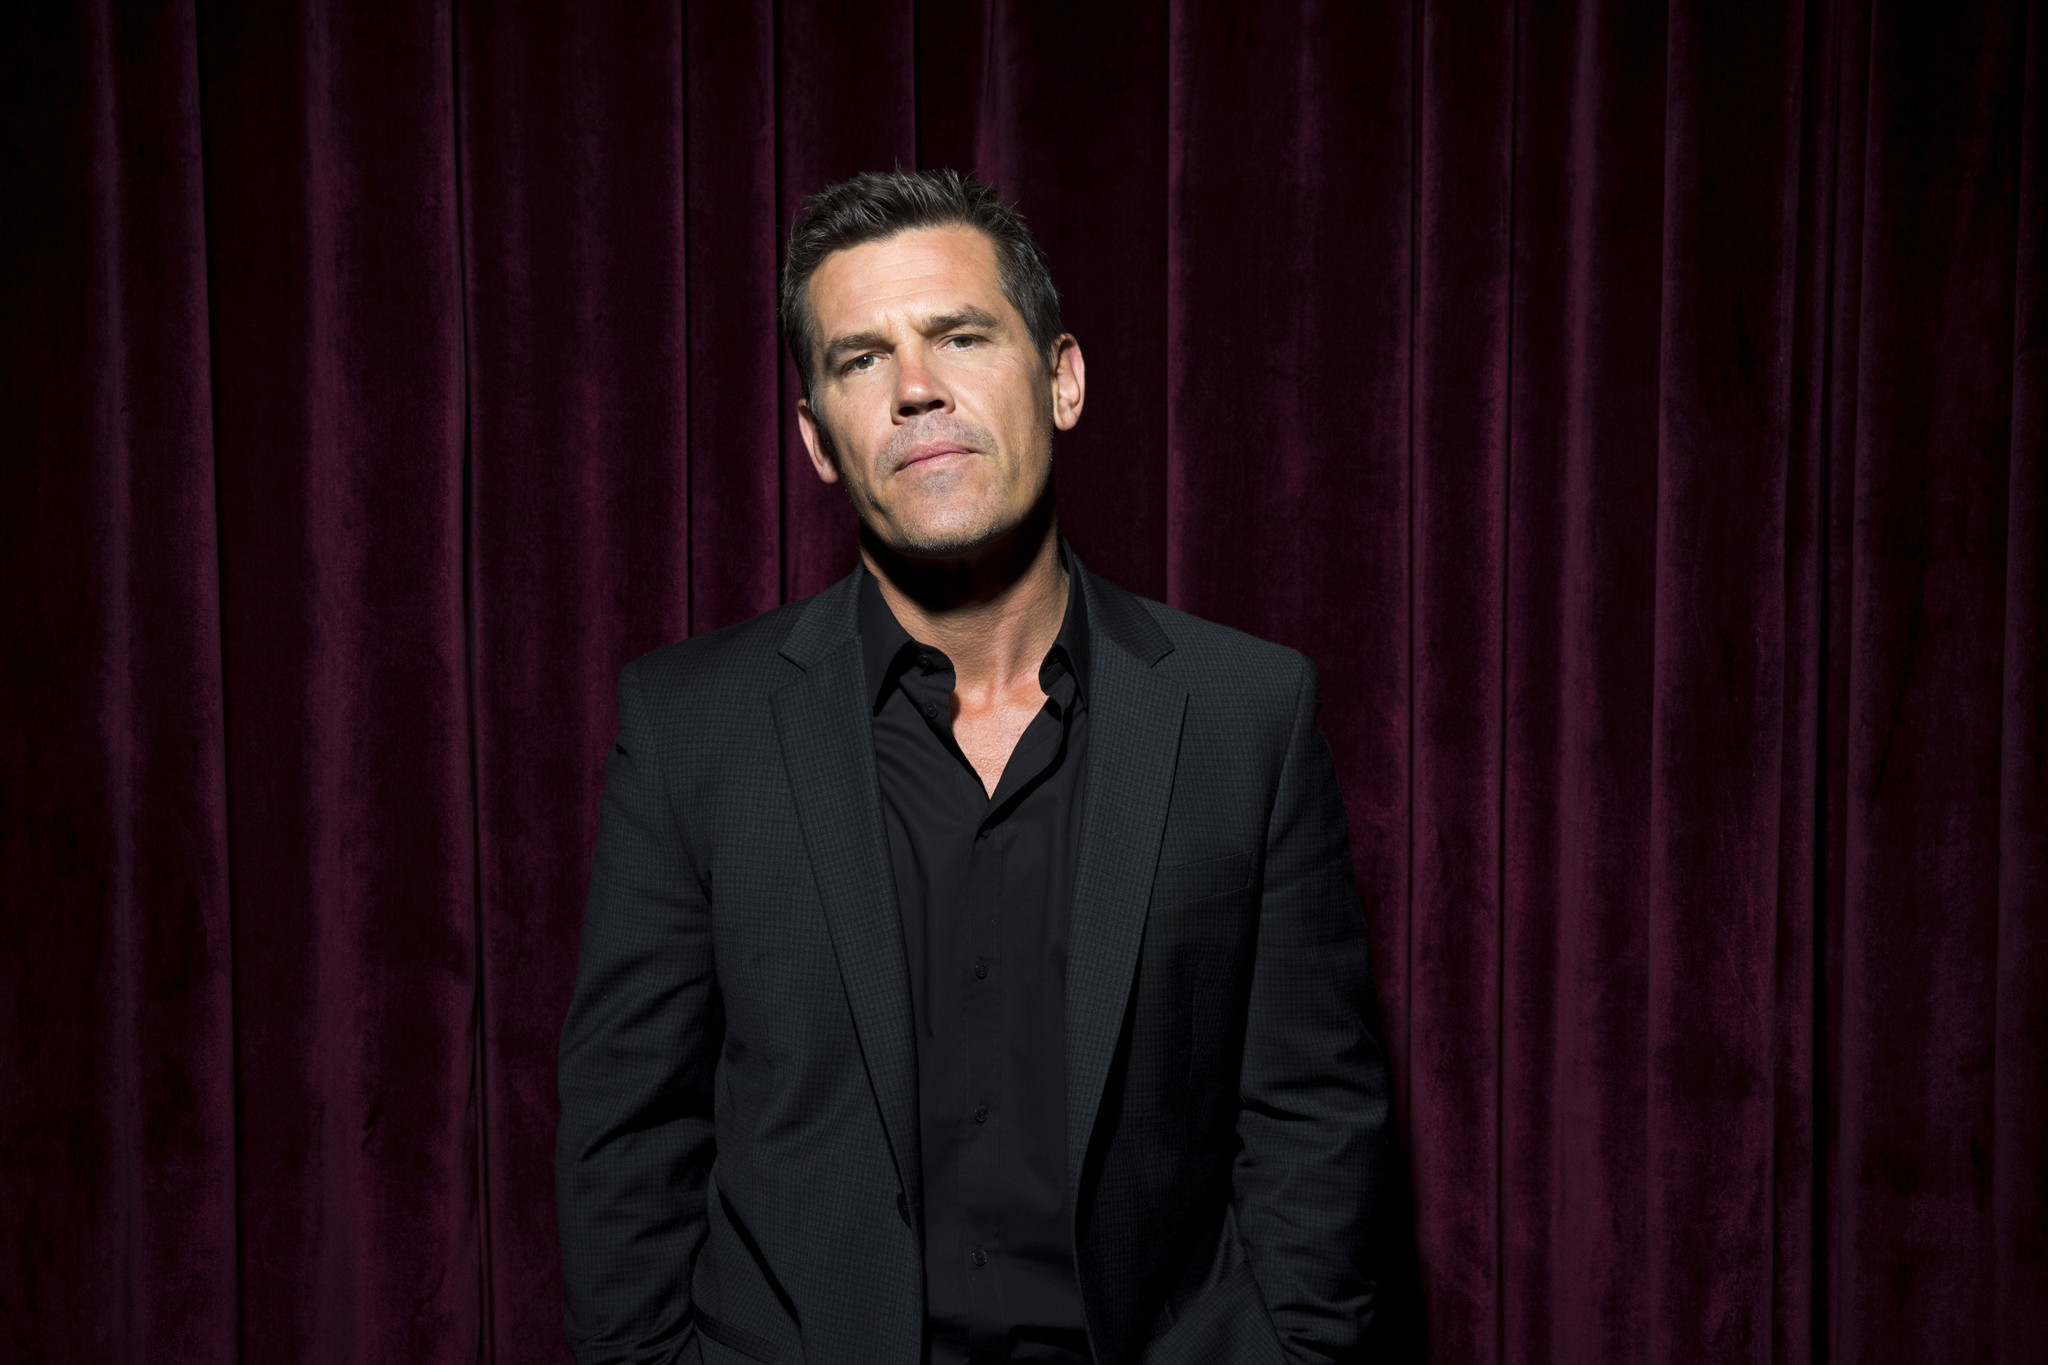 Josh Brolin Joins 'Deadpool 2' As Cable, Beefing Up His